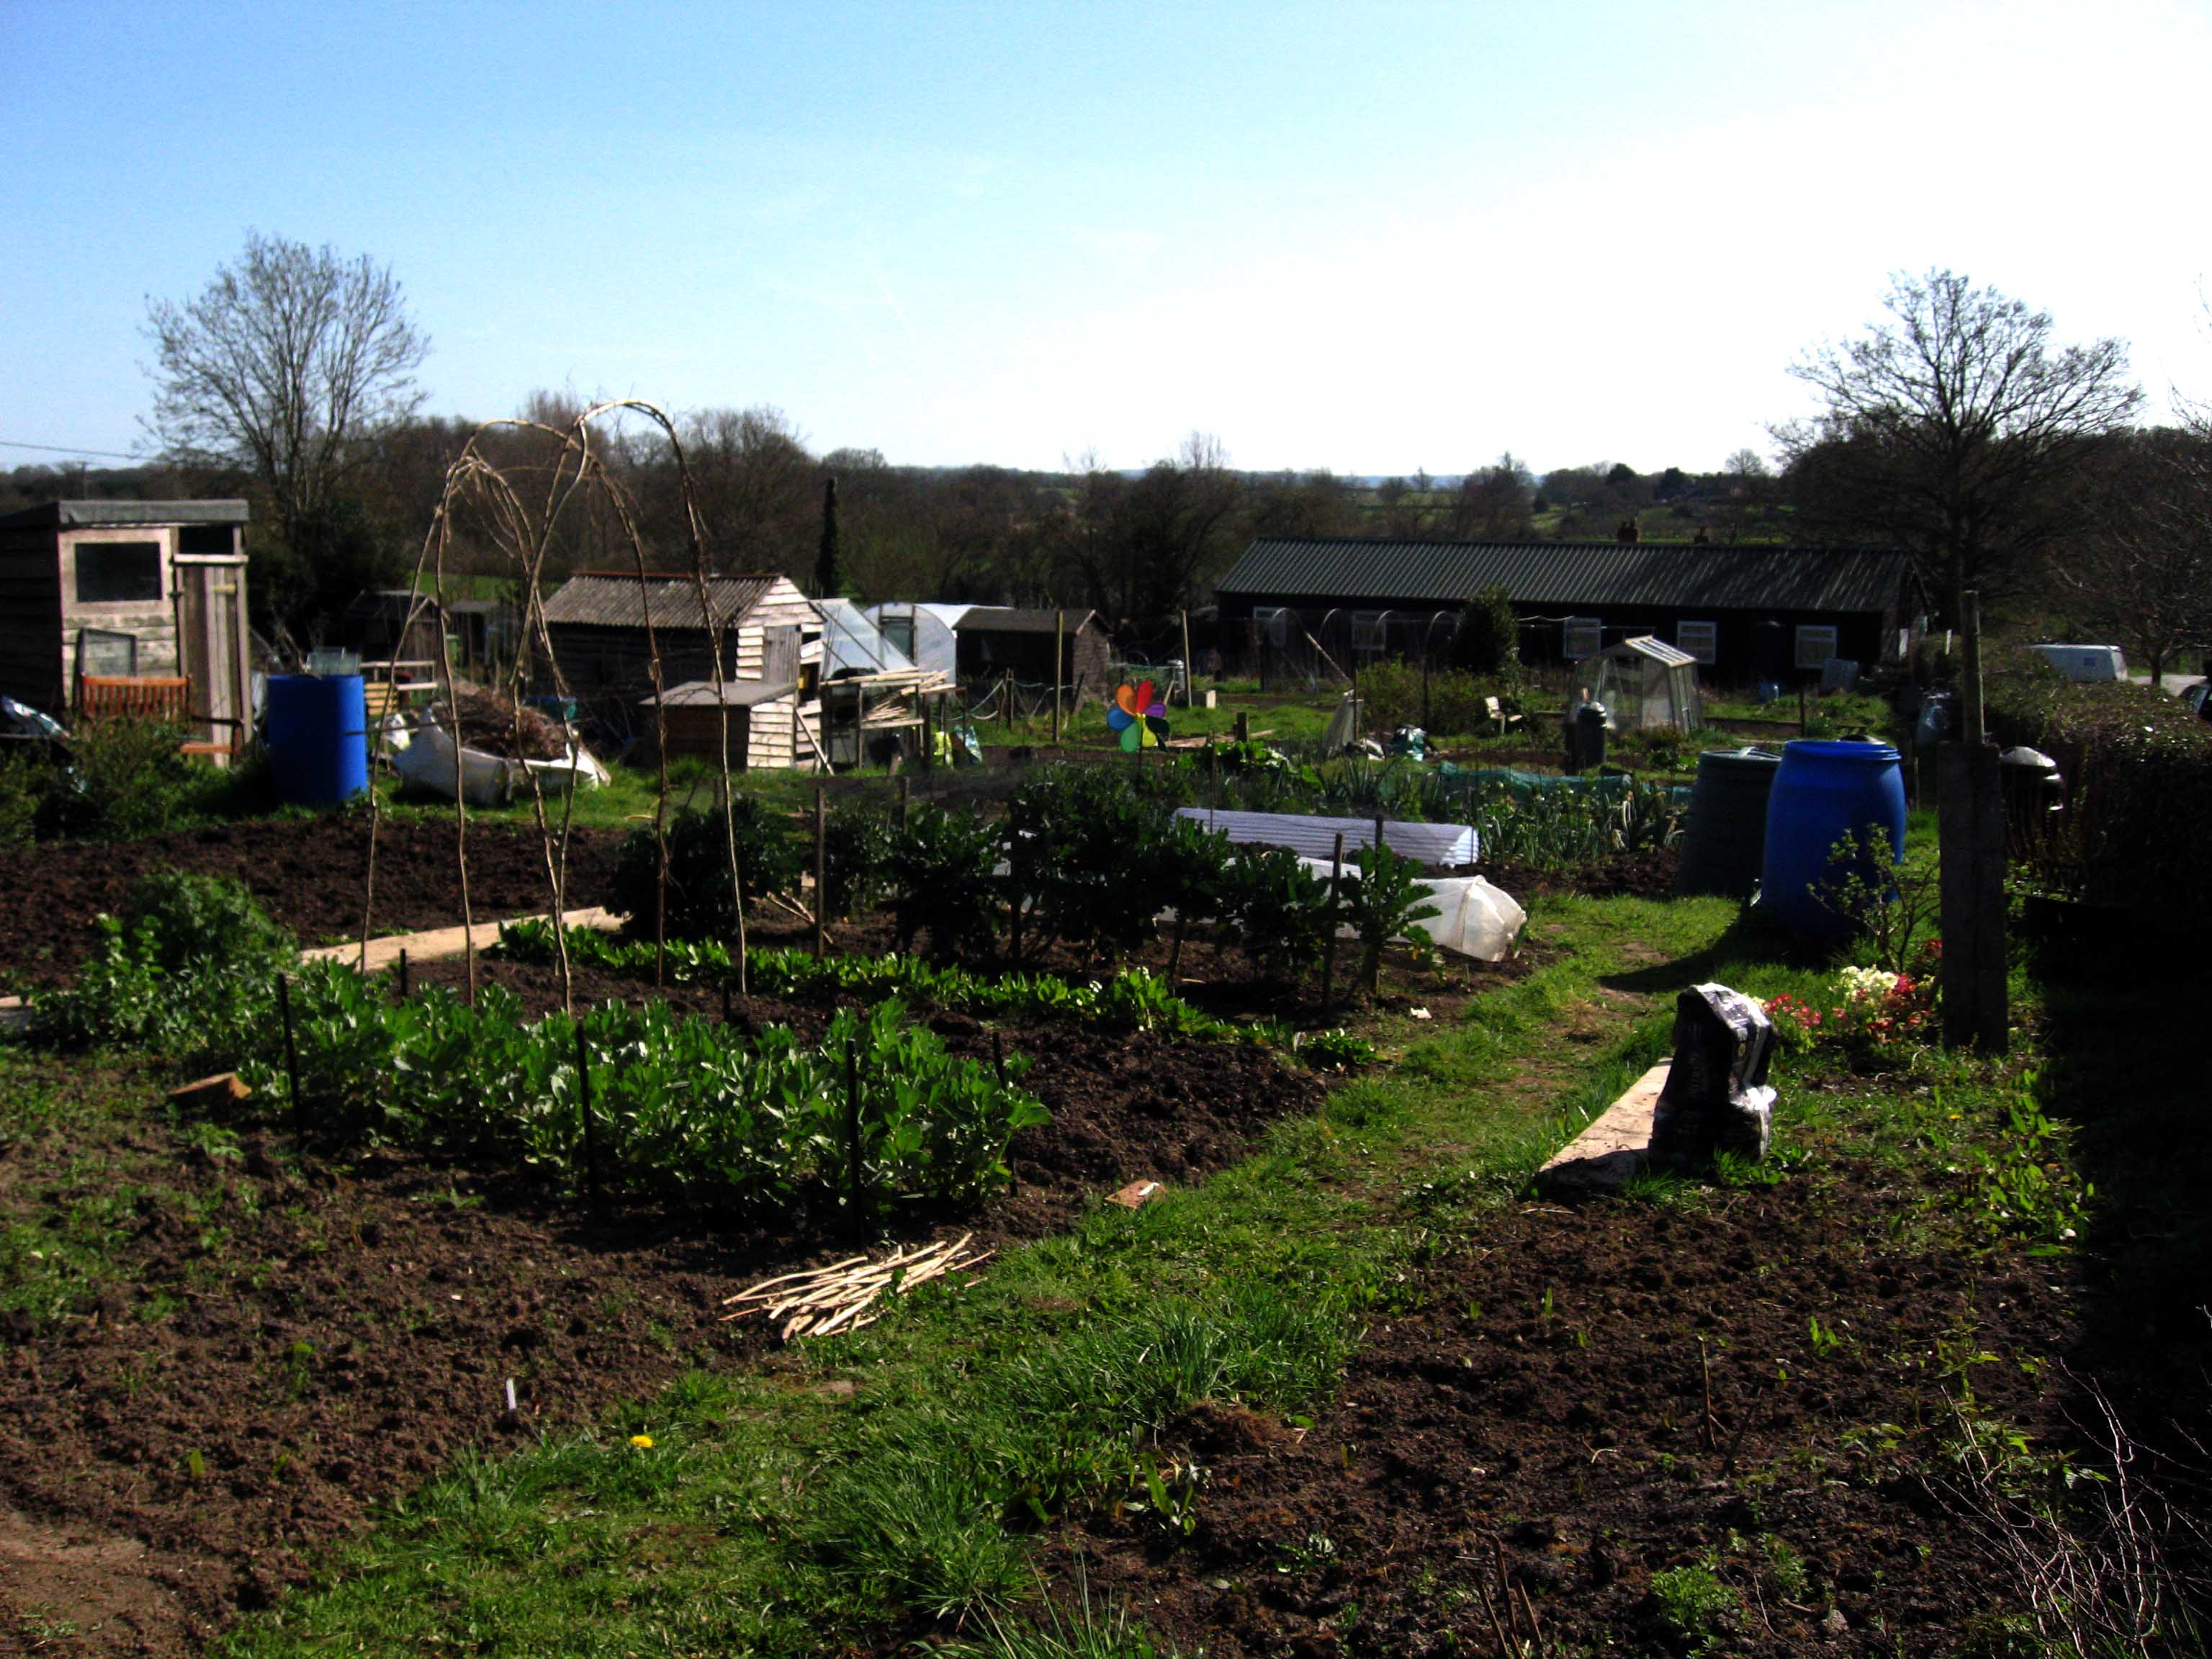 Allotments with growing crops